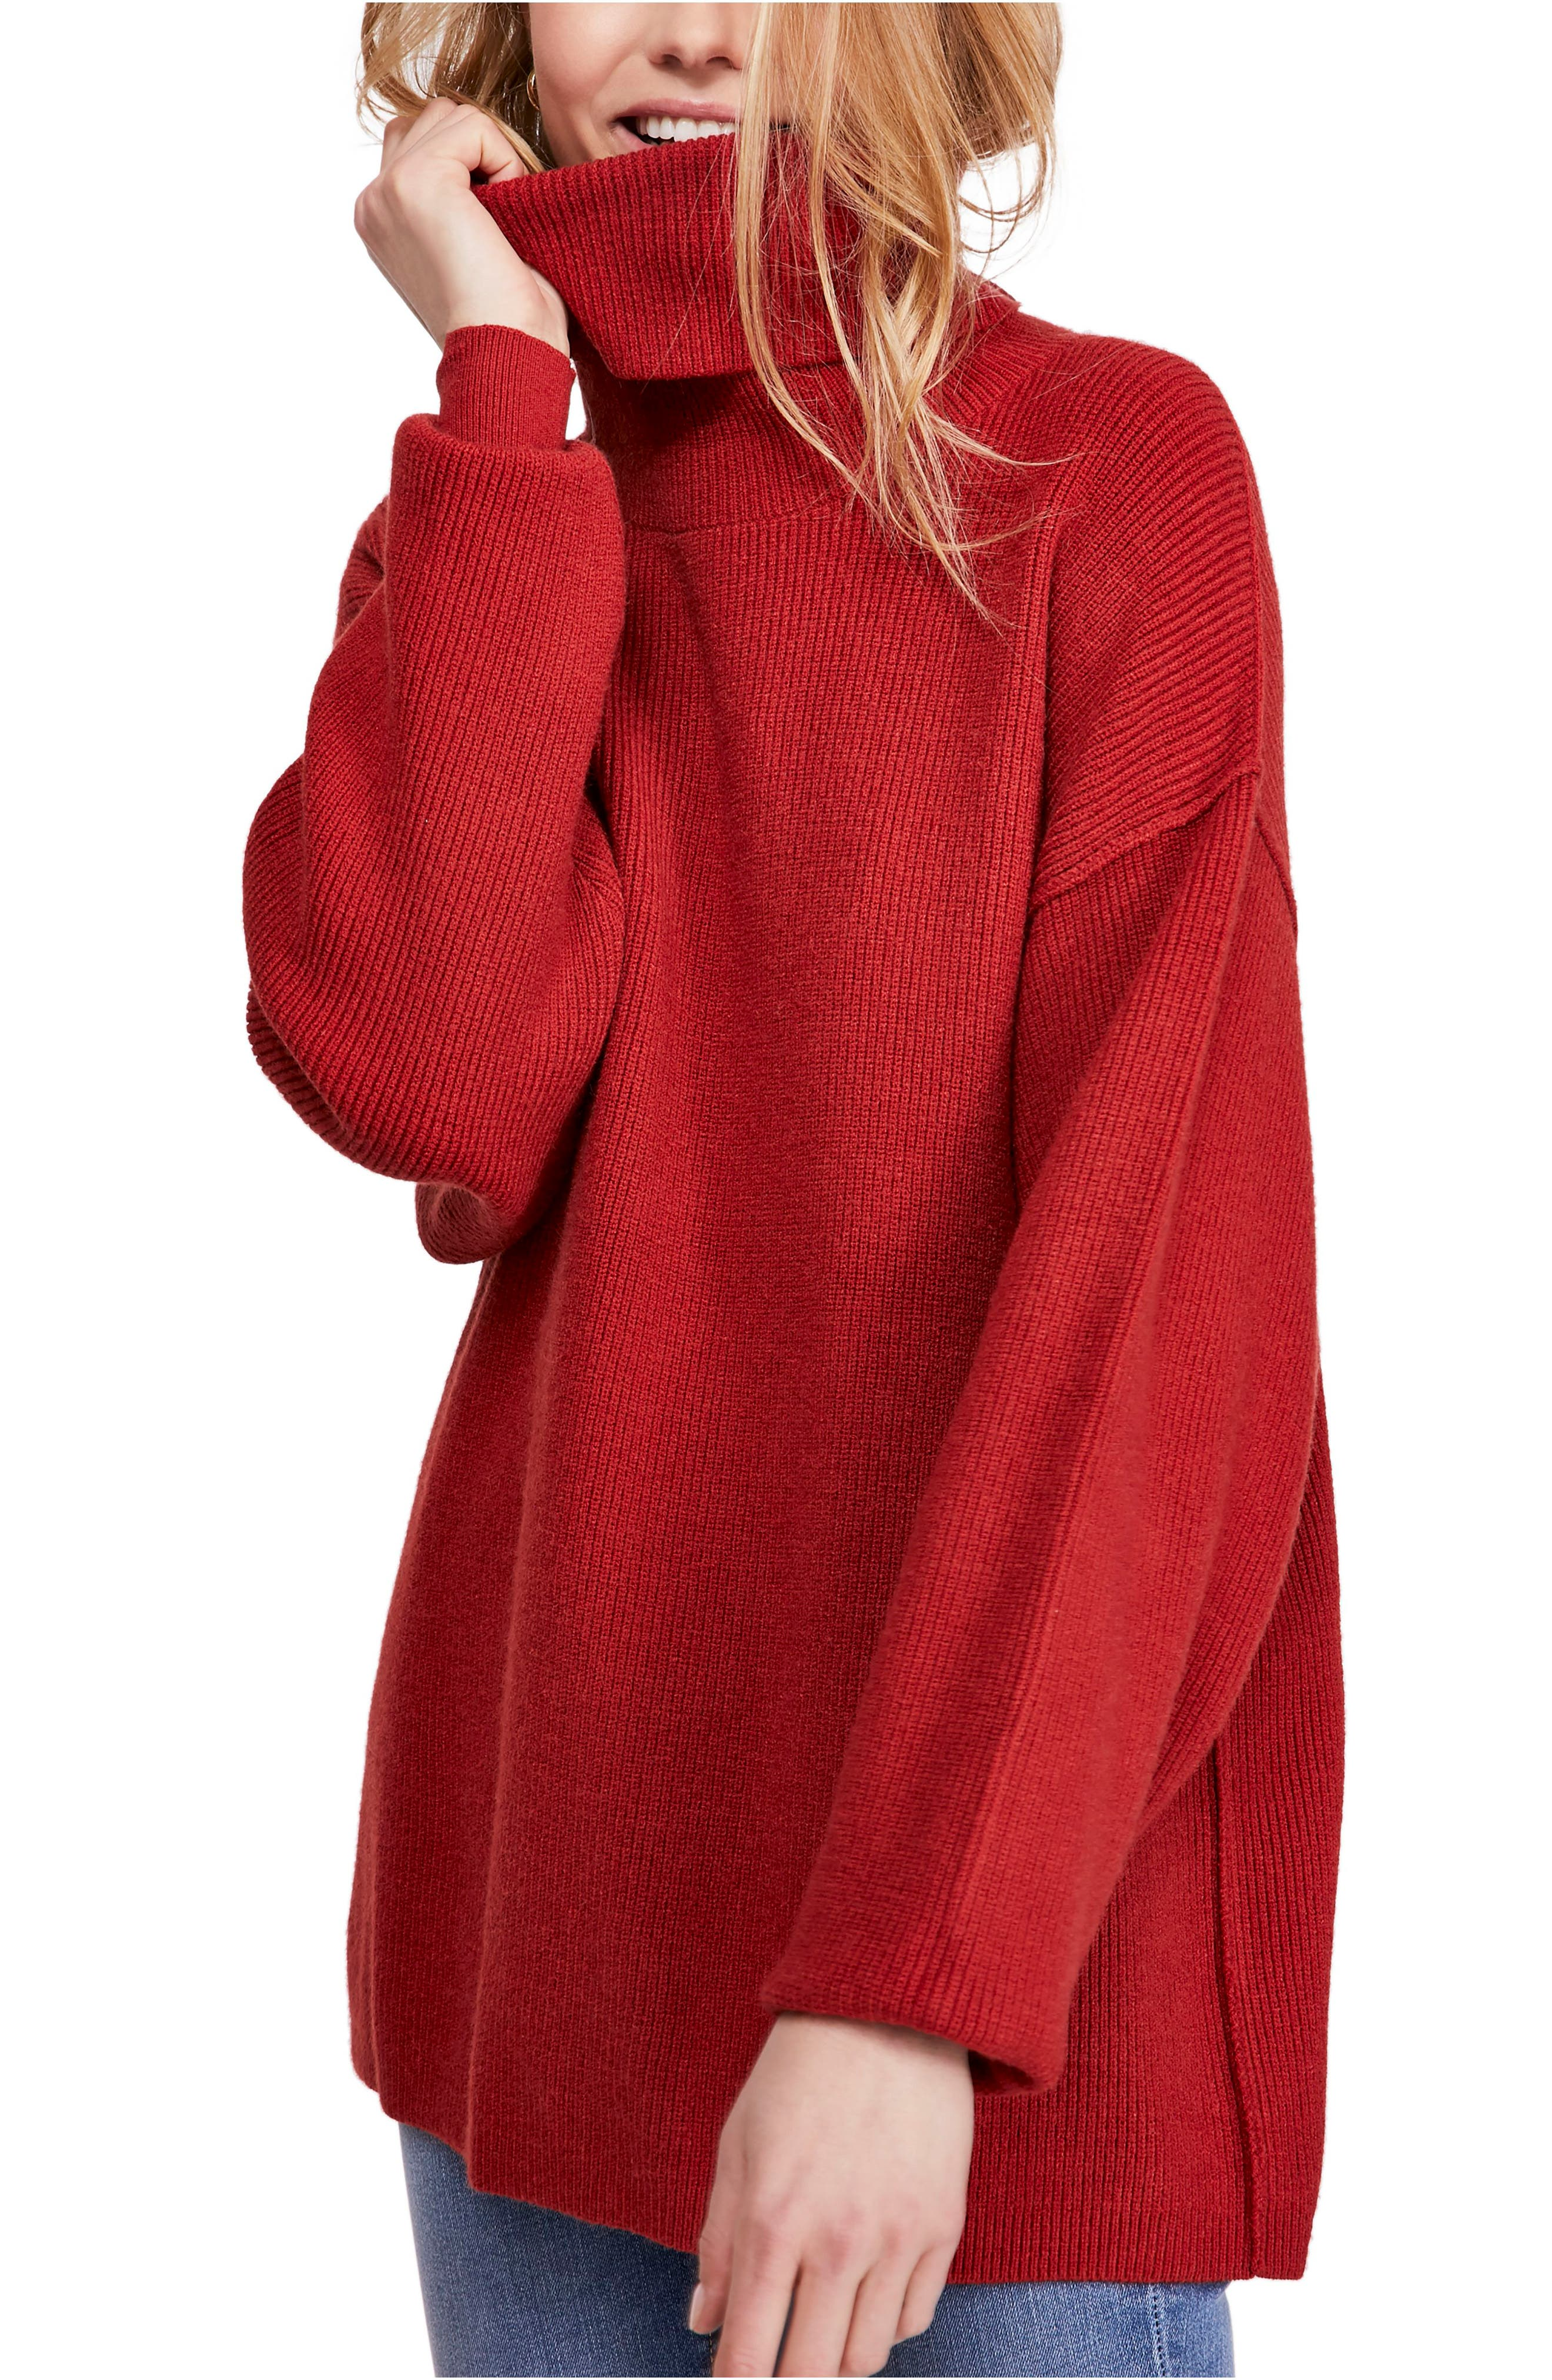 FREE PEOPLE, Softly Structured Knit Tunic, Main thumbnail 1, color, 600